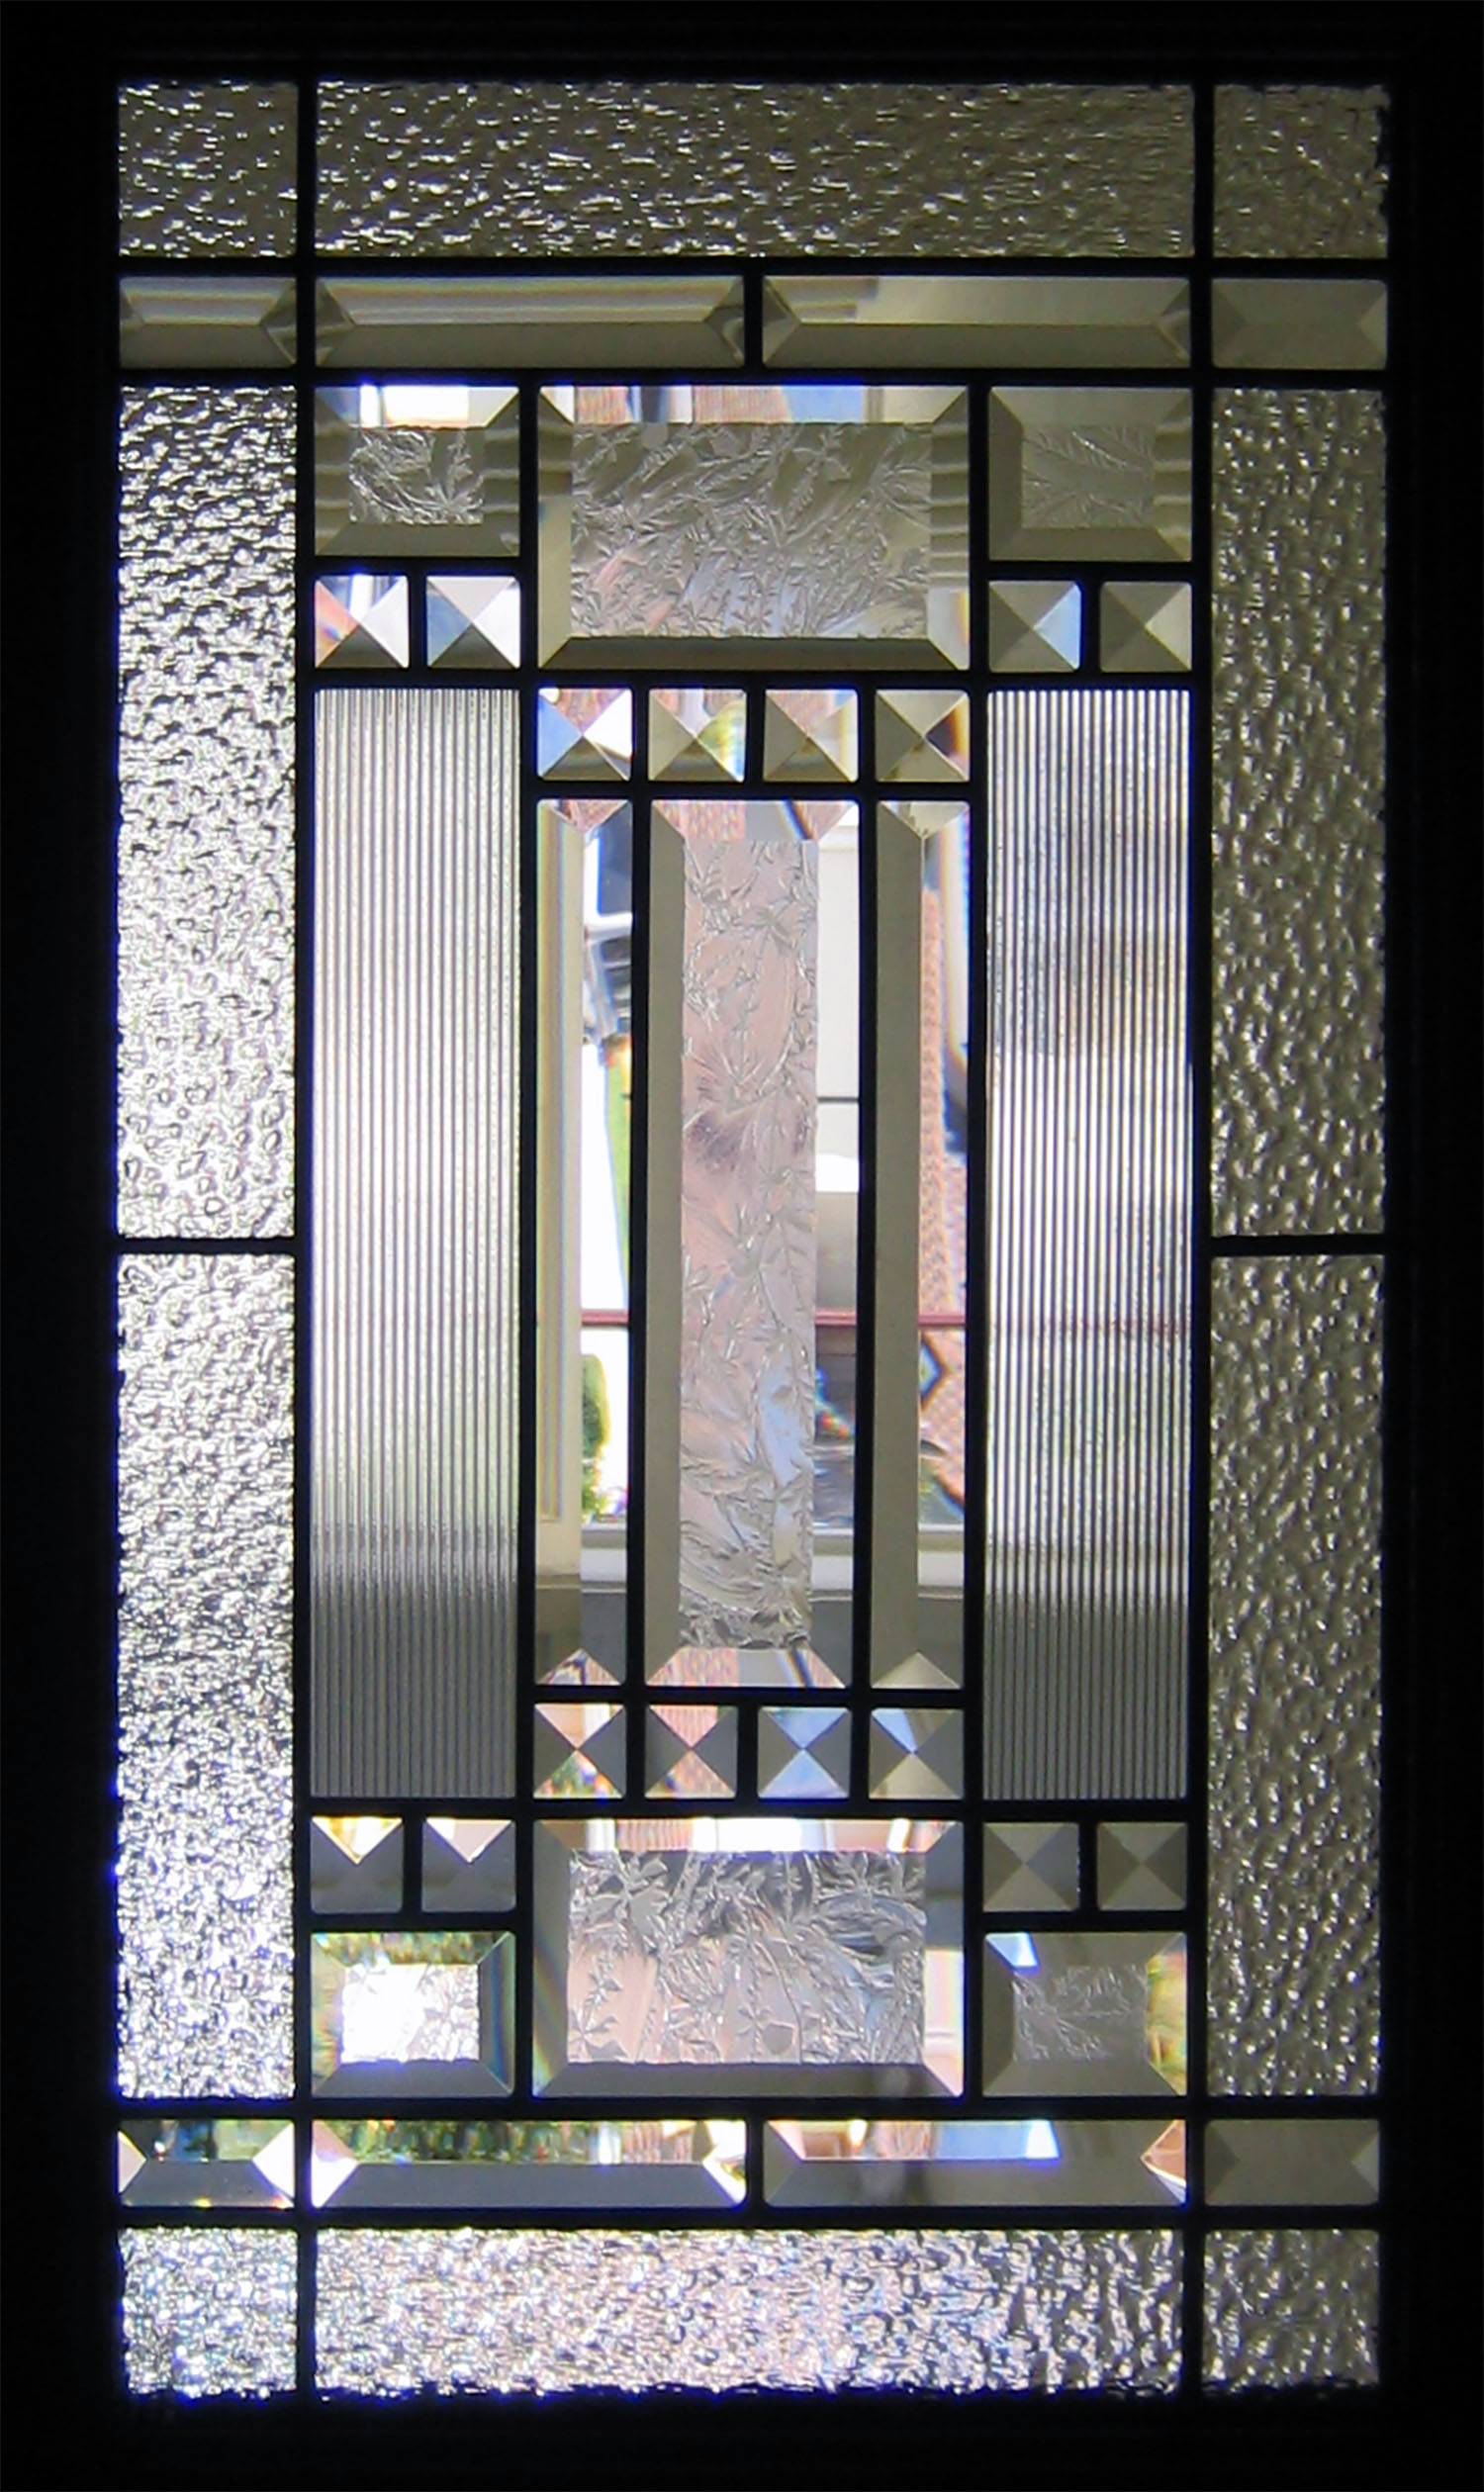 pencil bevel corded glass granite clear texture leaded glass stained glass window palo alto atherton california san francisco san jose legacy glass.jpg